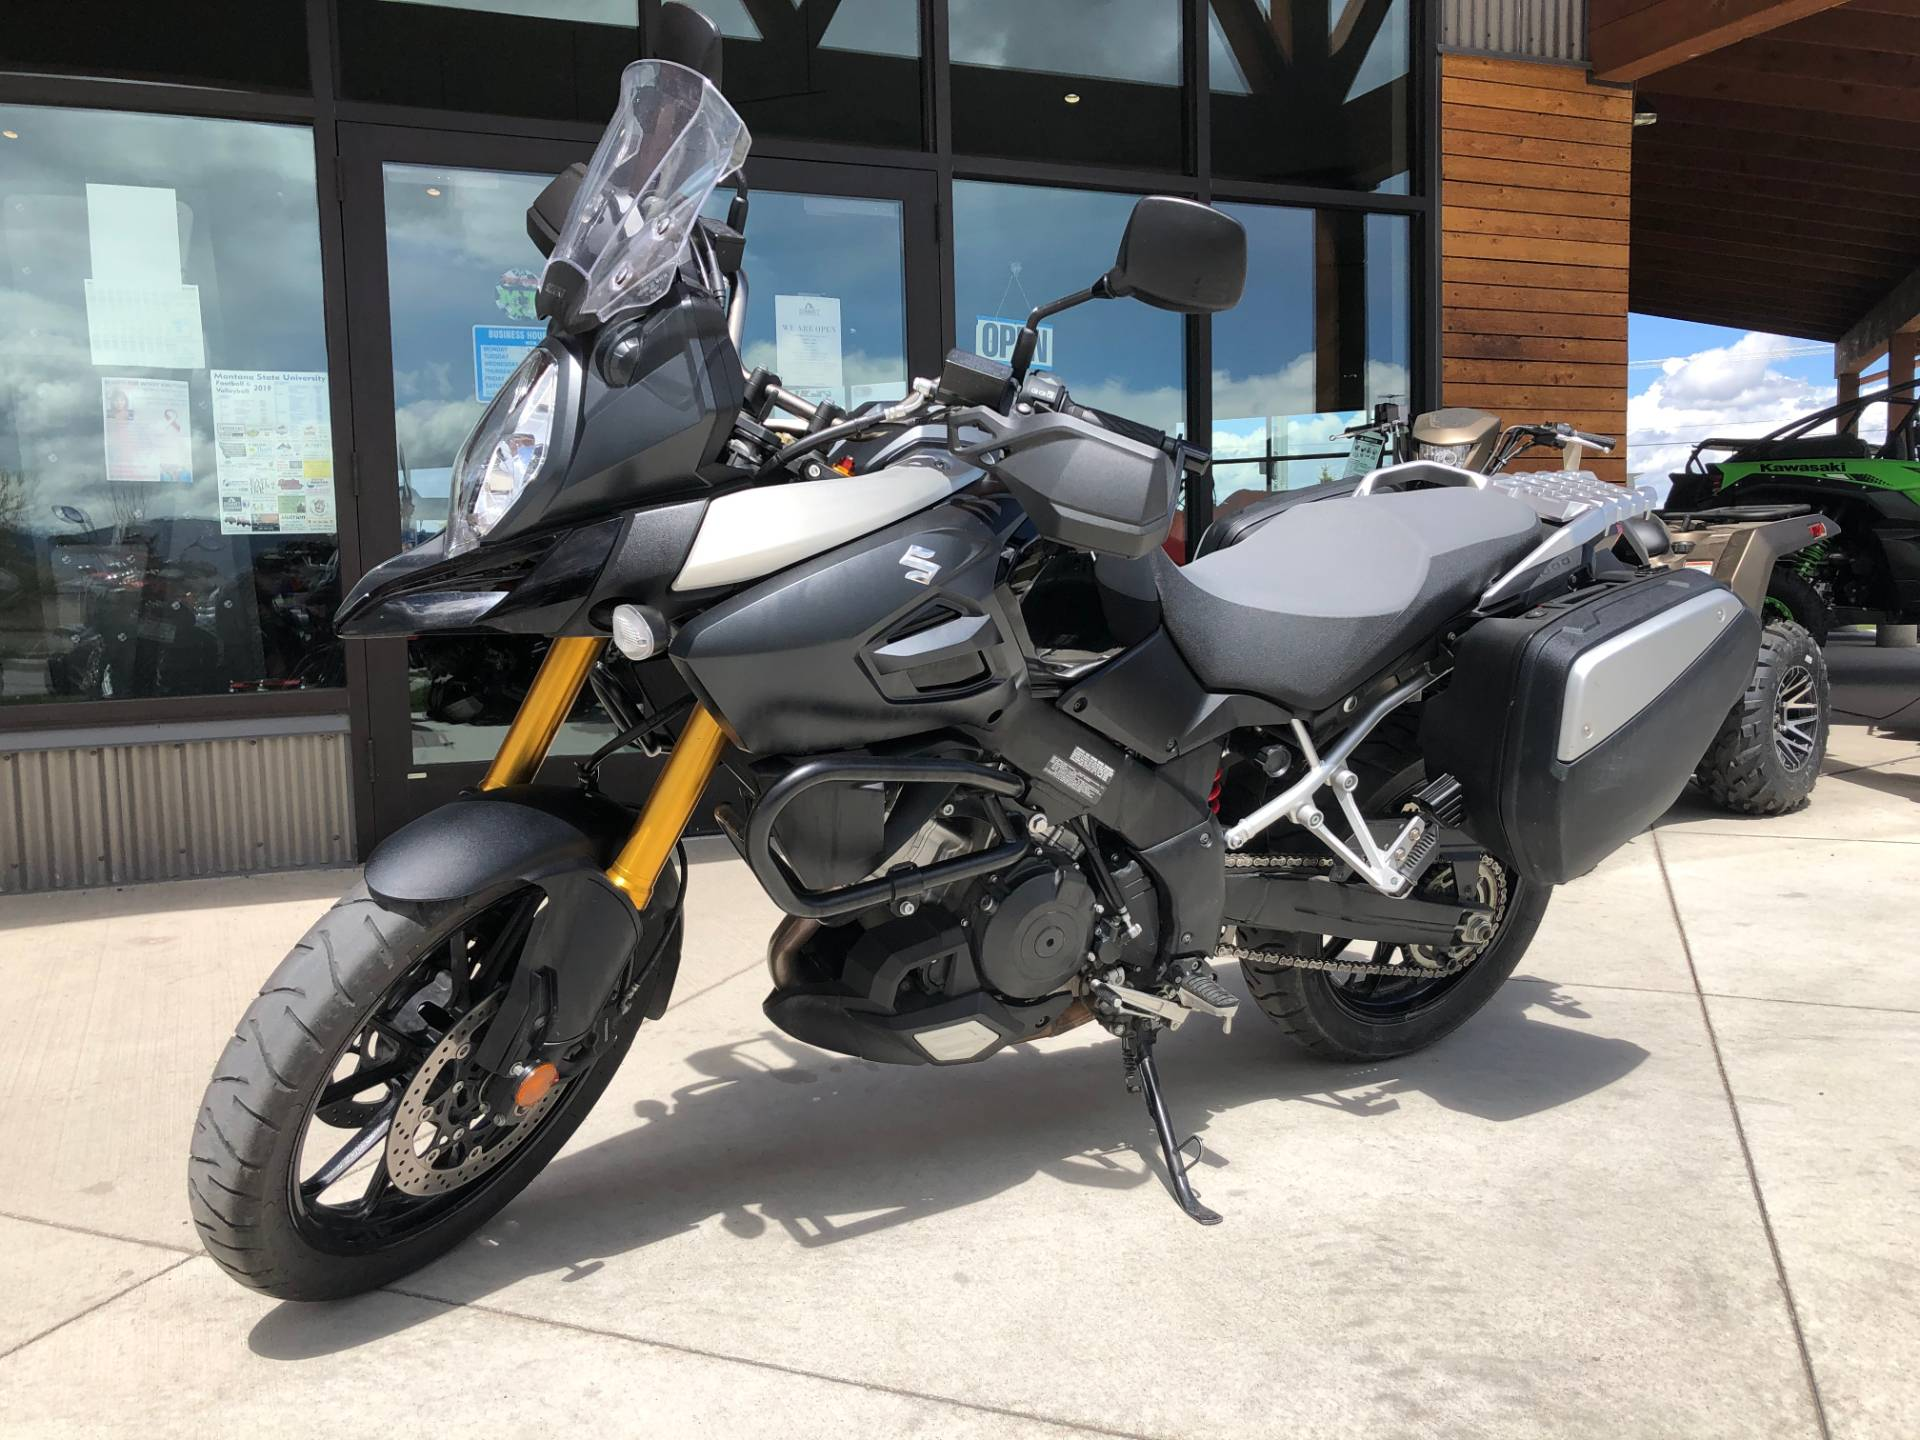 2014 Suzuki V-Strom 1000 ABS Adventure in Bozeman, Montana - Photo 1